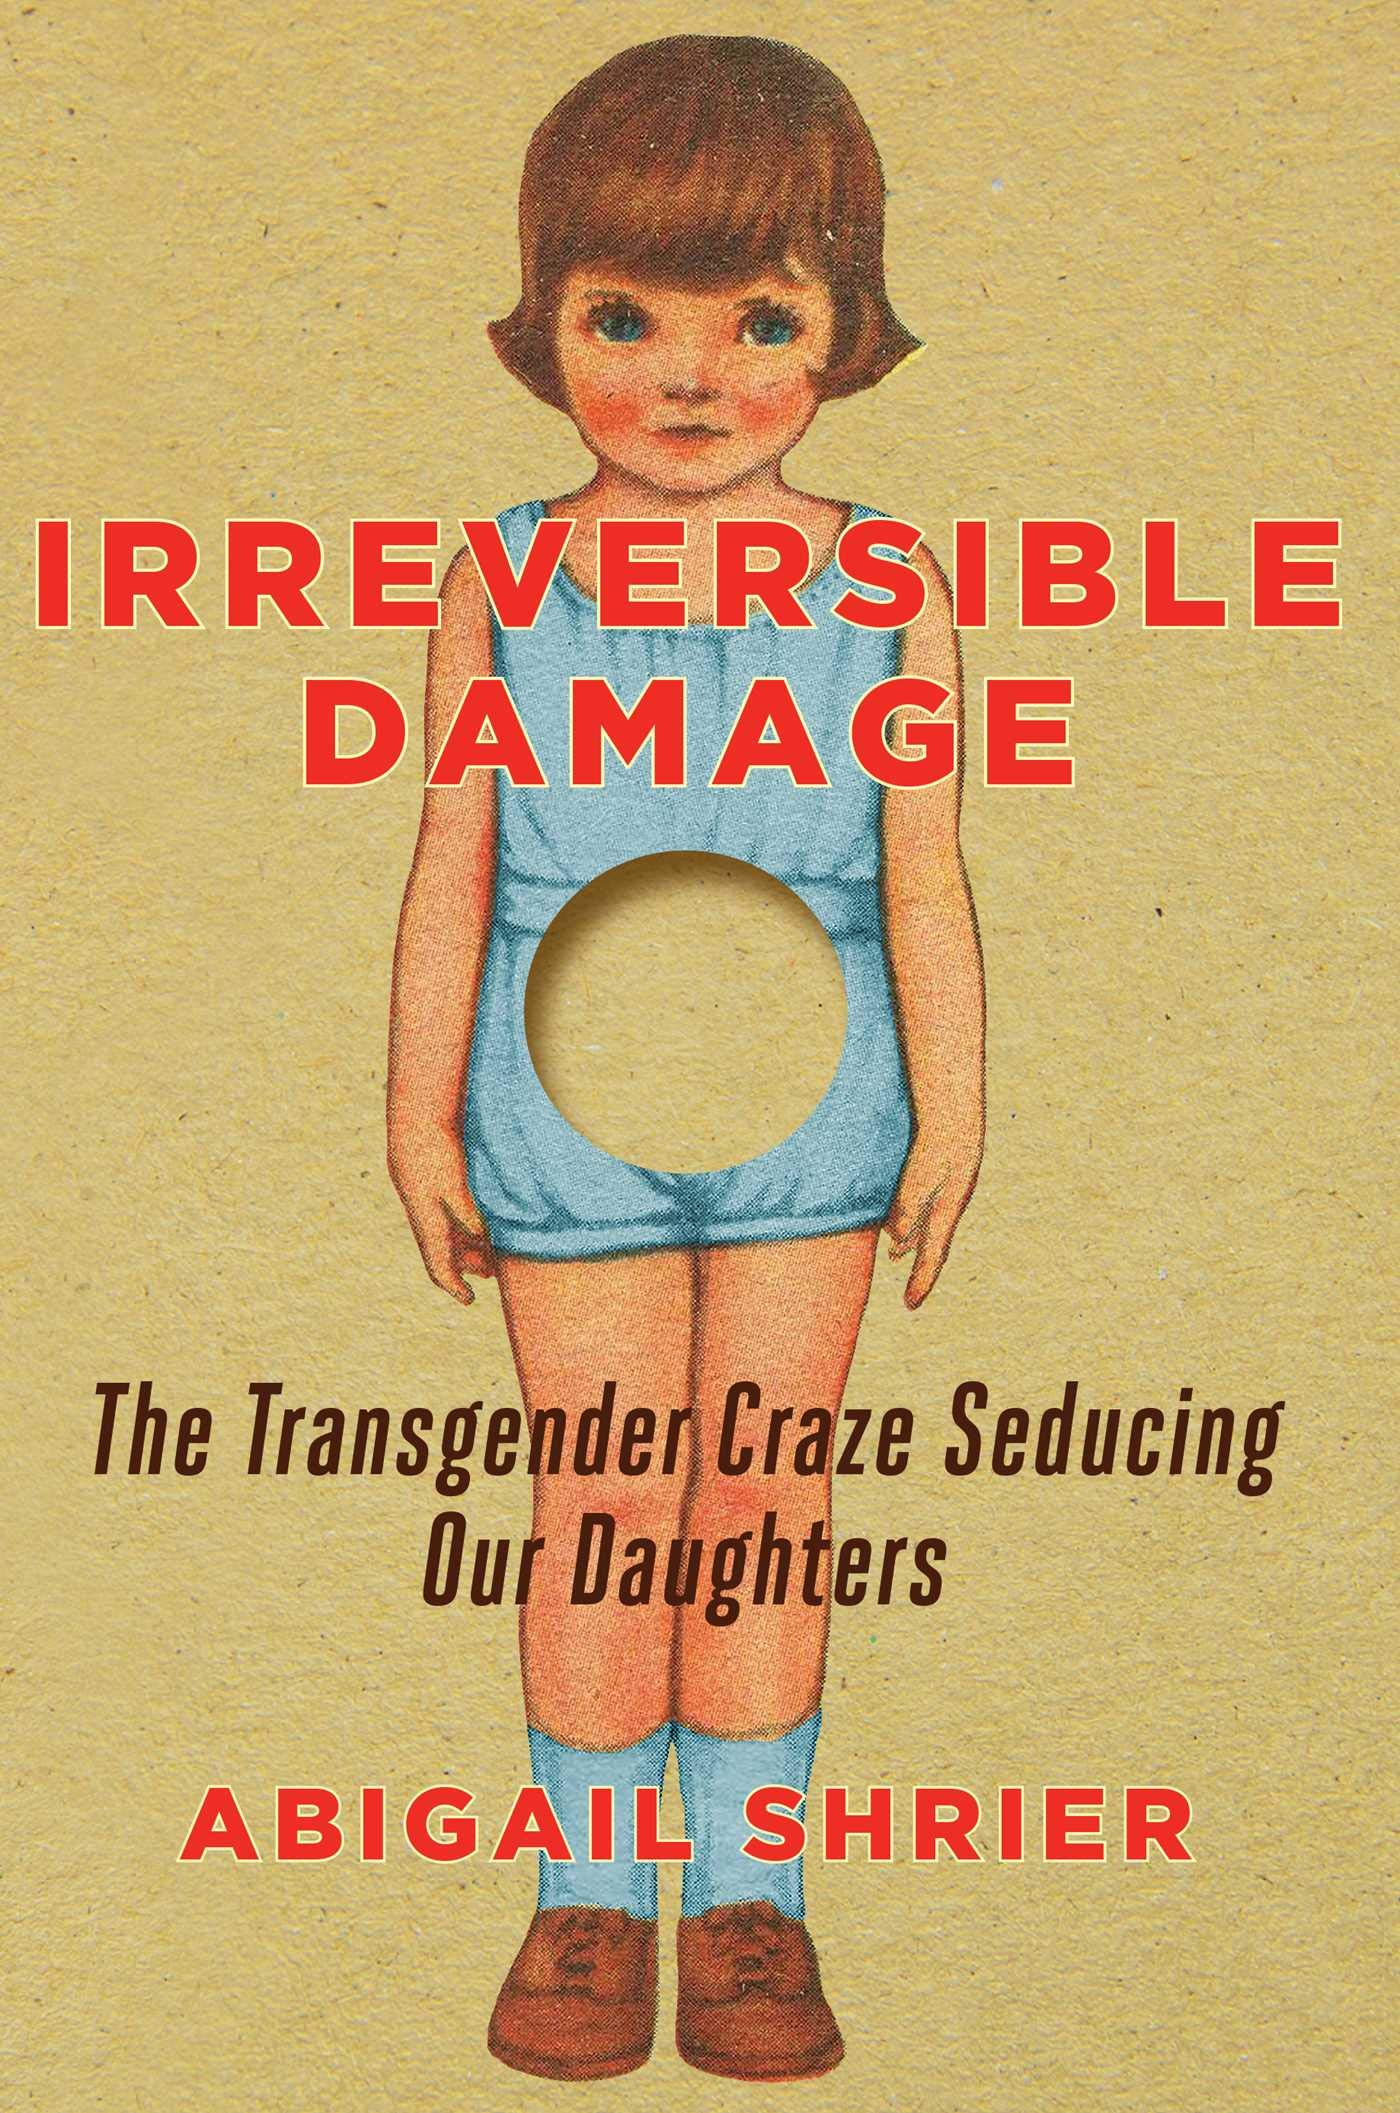 Cover image of Irreversible Damage by Abigail Shrier